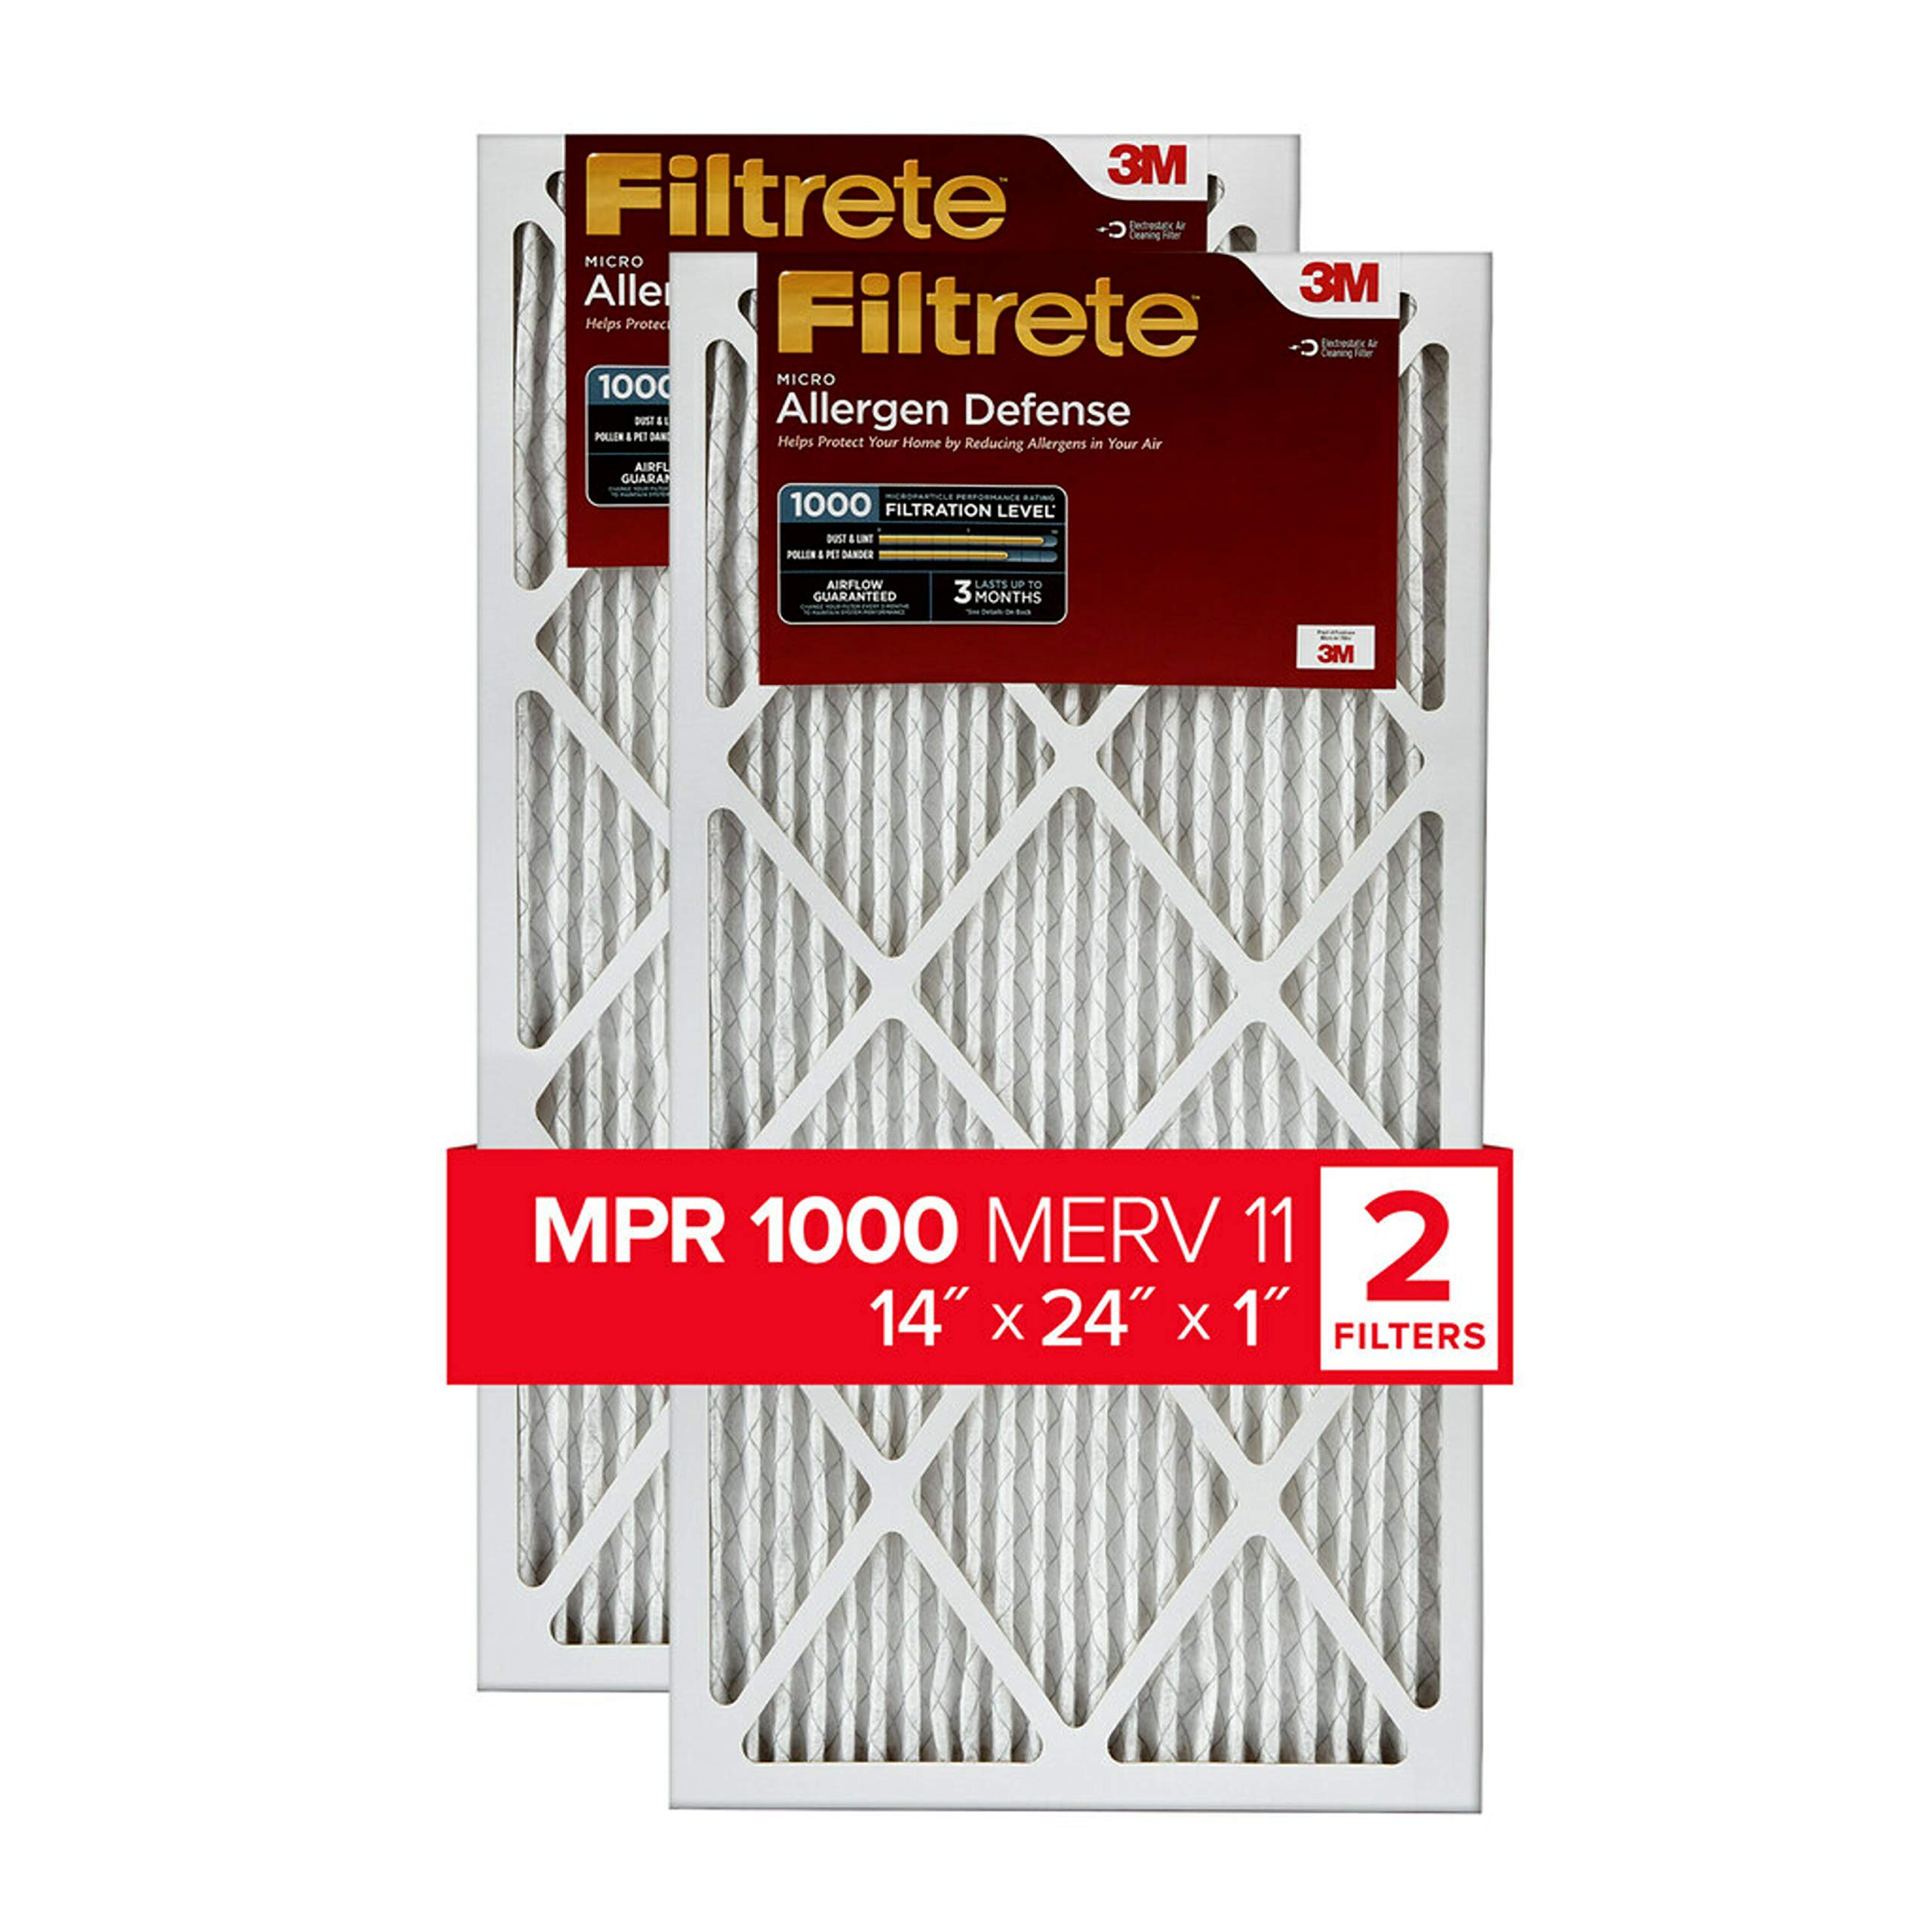 Nordic Pure 14x25x1 MPR 1900 Healthy Living Maximum Allergen Reduction Replacement AC Furnace Air Filters 1 Pack